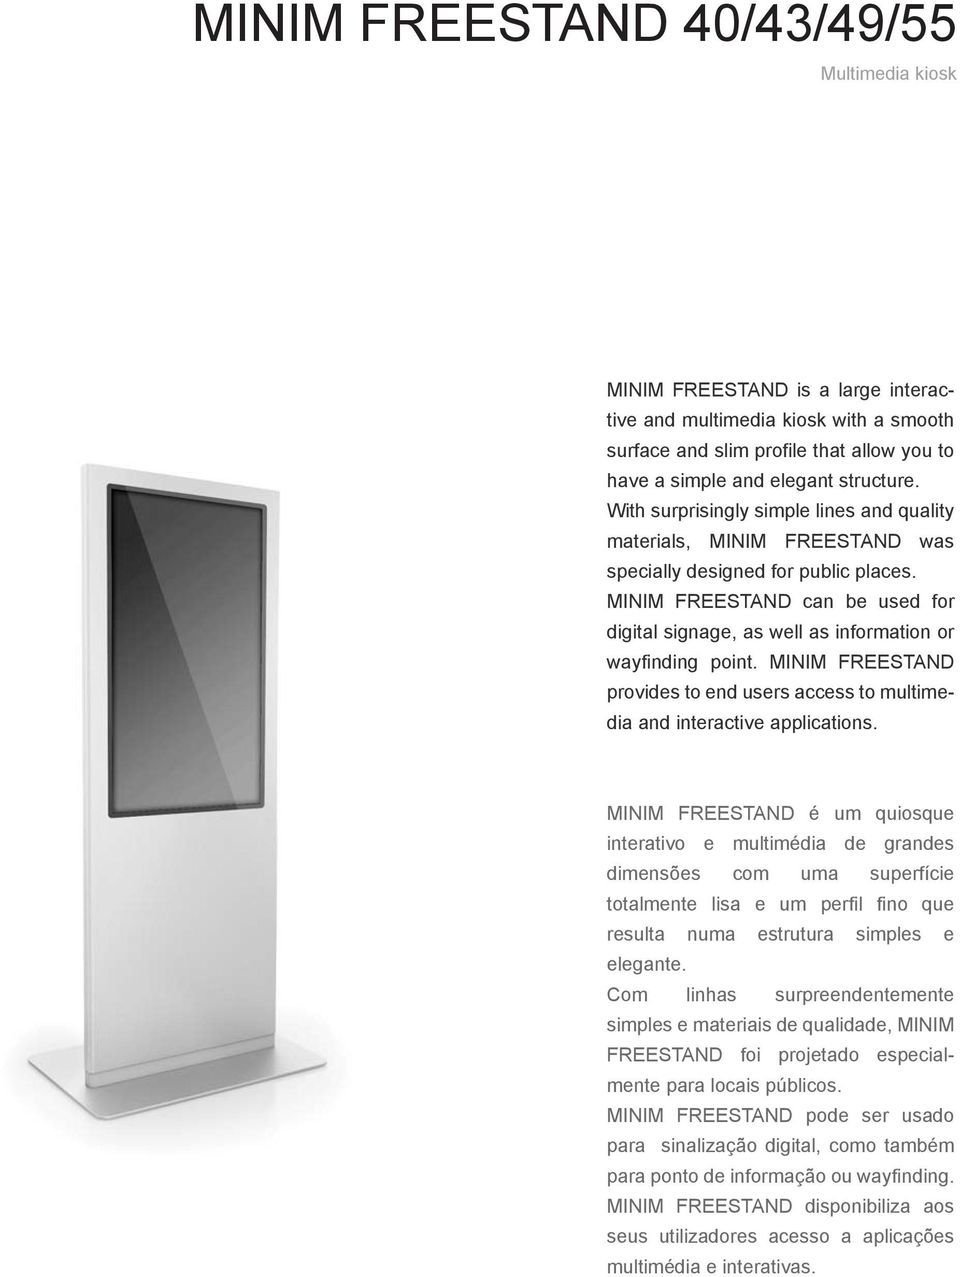 MINIM FREESTAND can be used for digital signage, as well as information or wayfinding point. MINIM FREESTAND provides to end users access to multimedia and interactive applications.